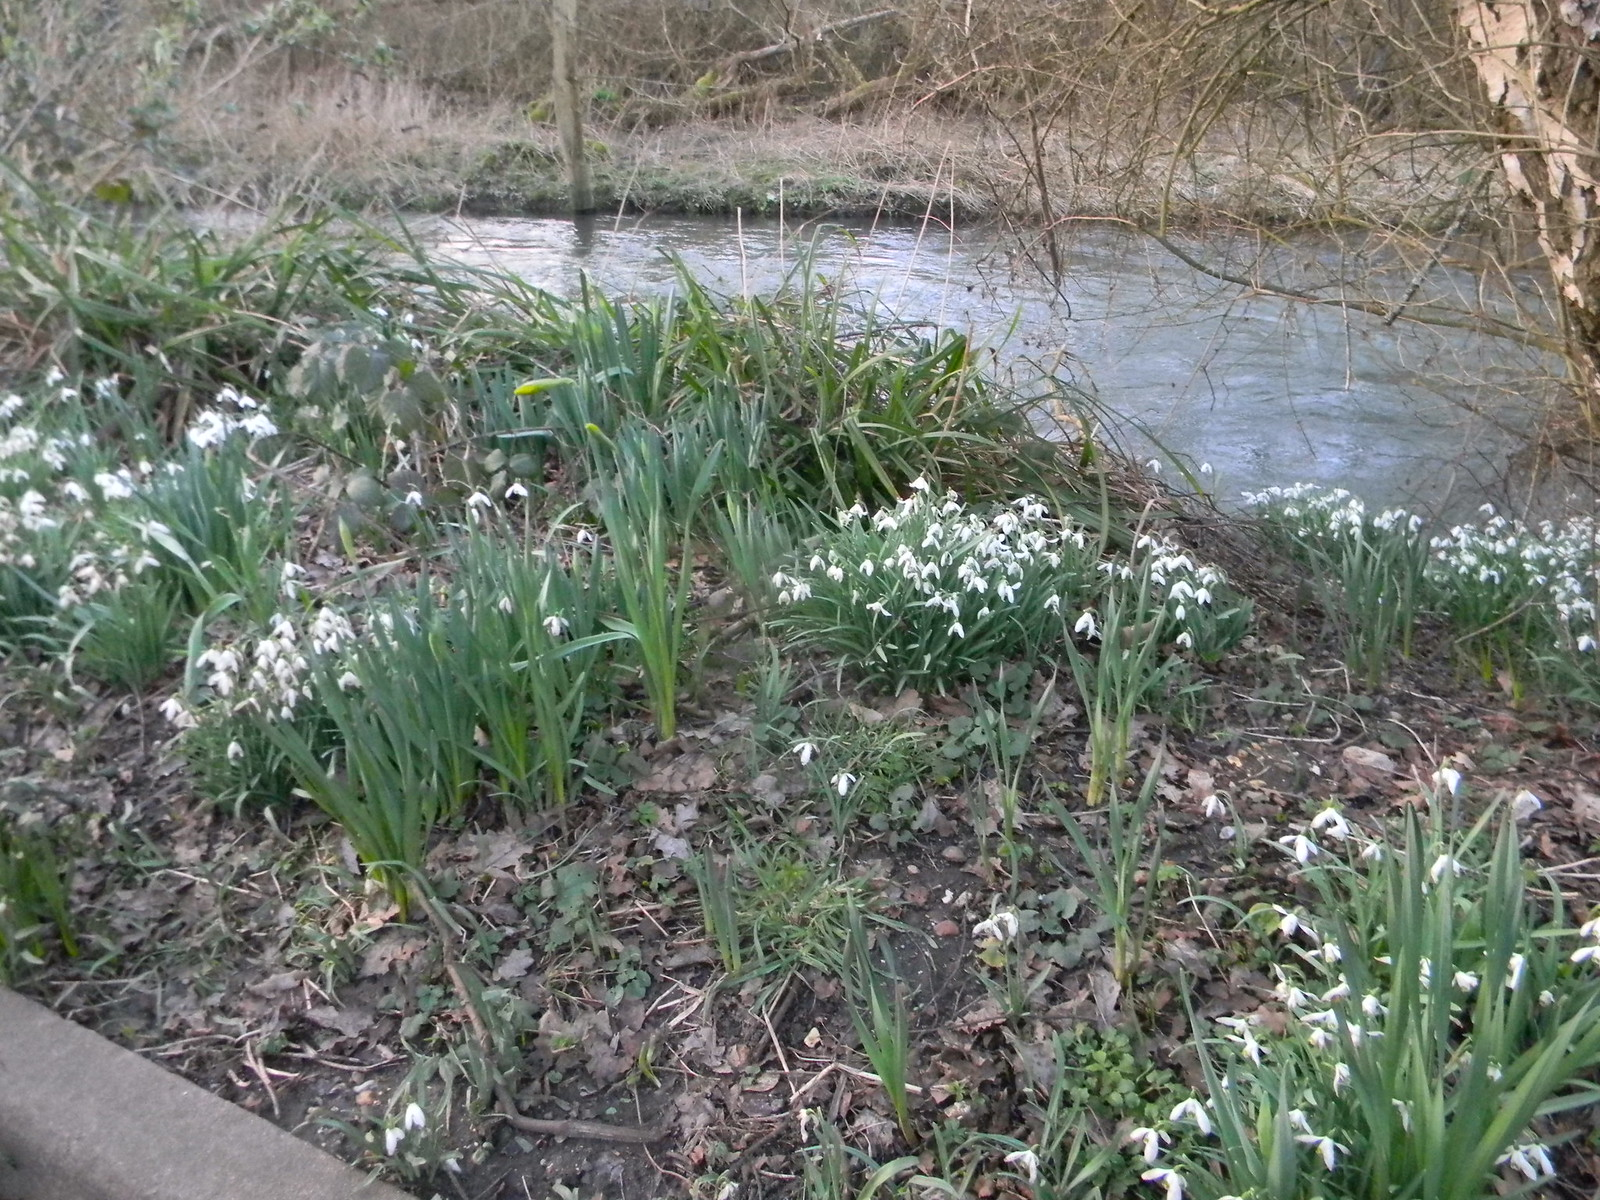 Snowdrops by the Wey Guildford to Farnham